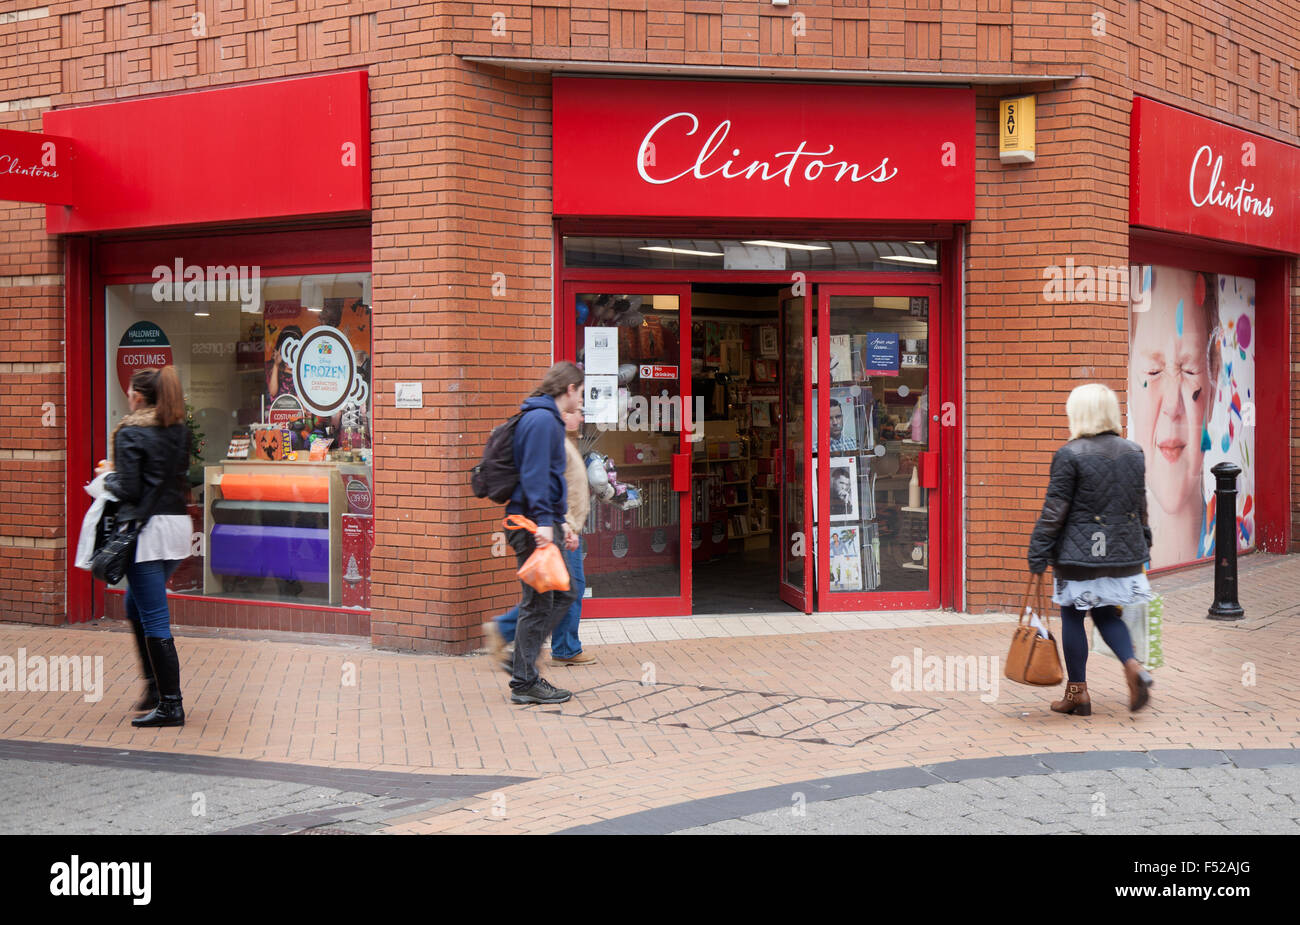 Clintons; Passing by Clinton Cards retail gift store business. Clintons corner shop, in Victoria St, town centre Stock Photo